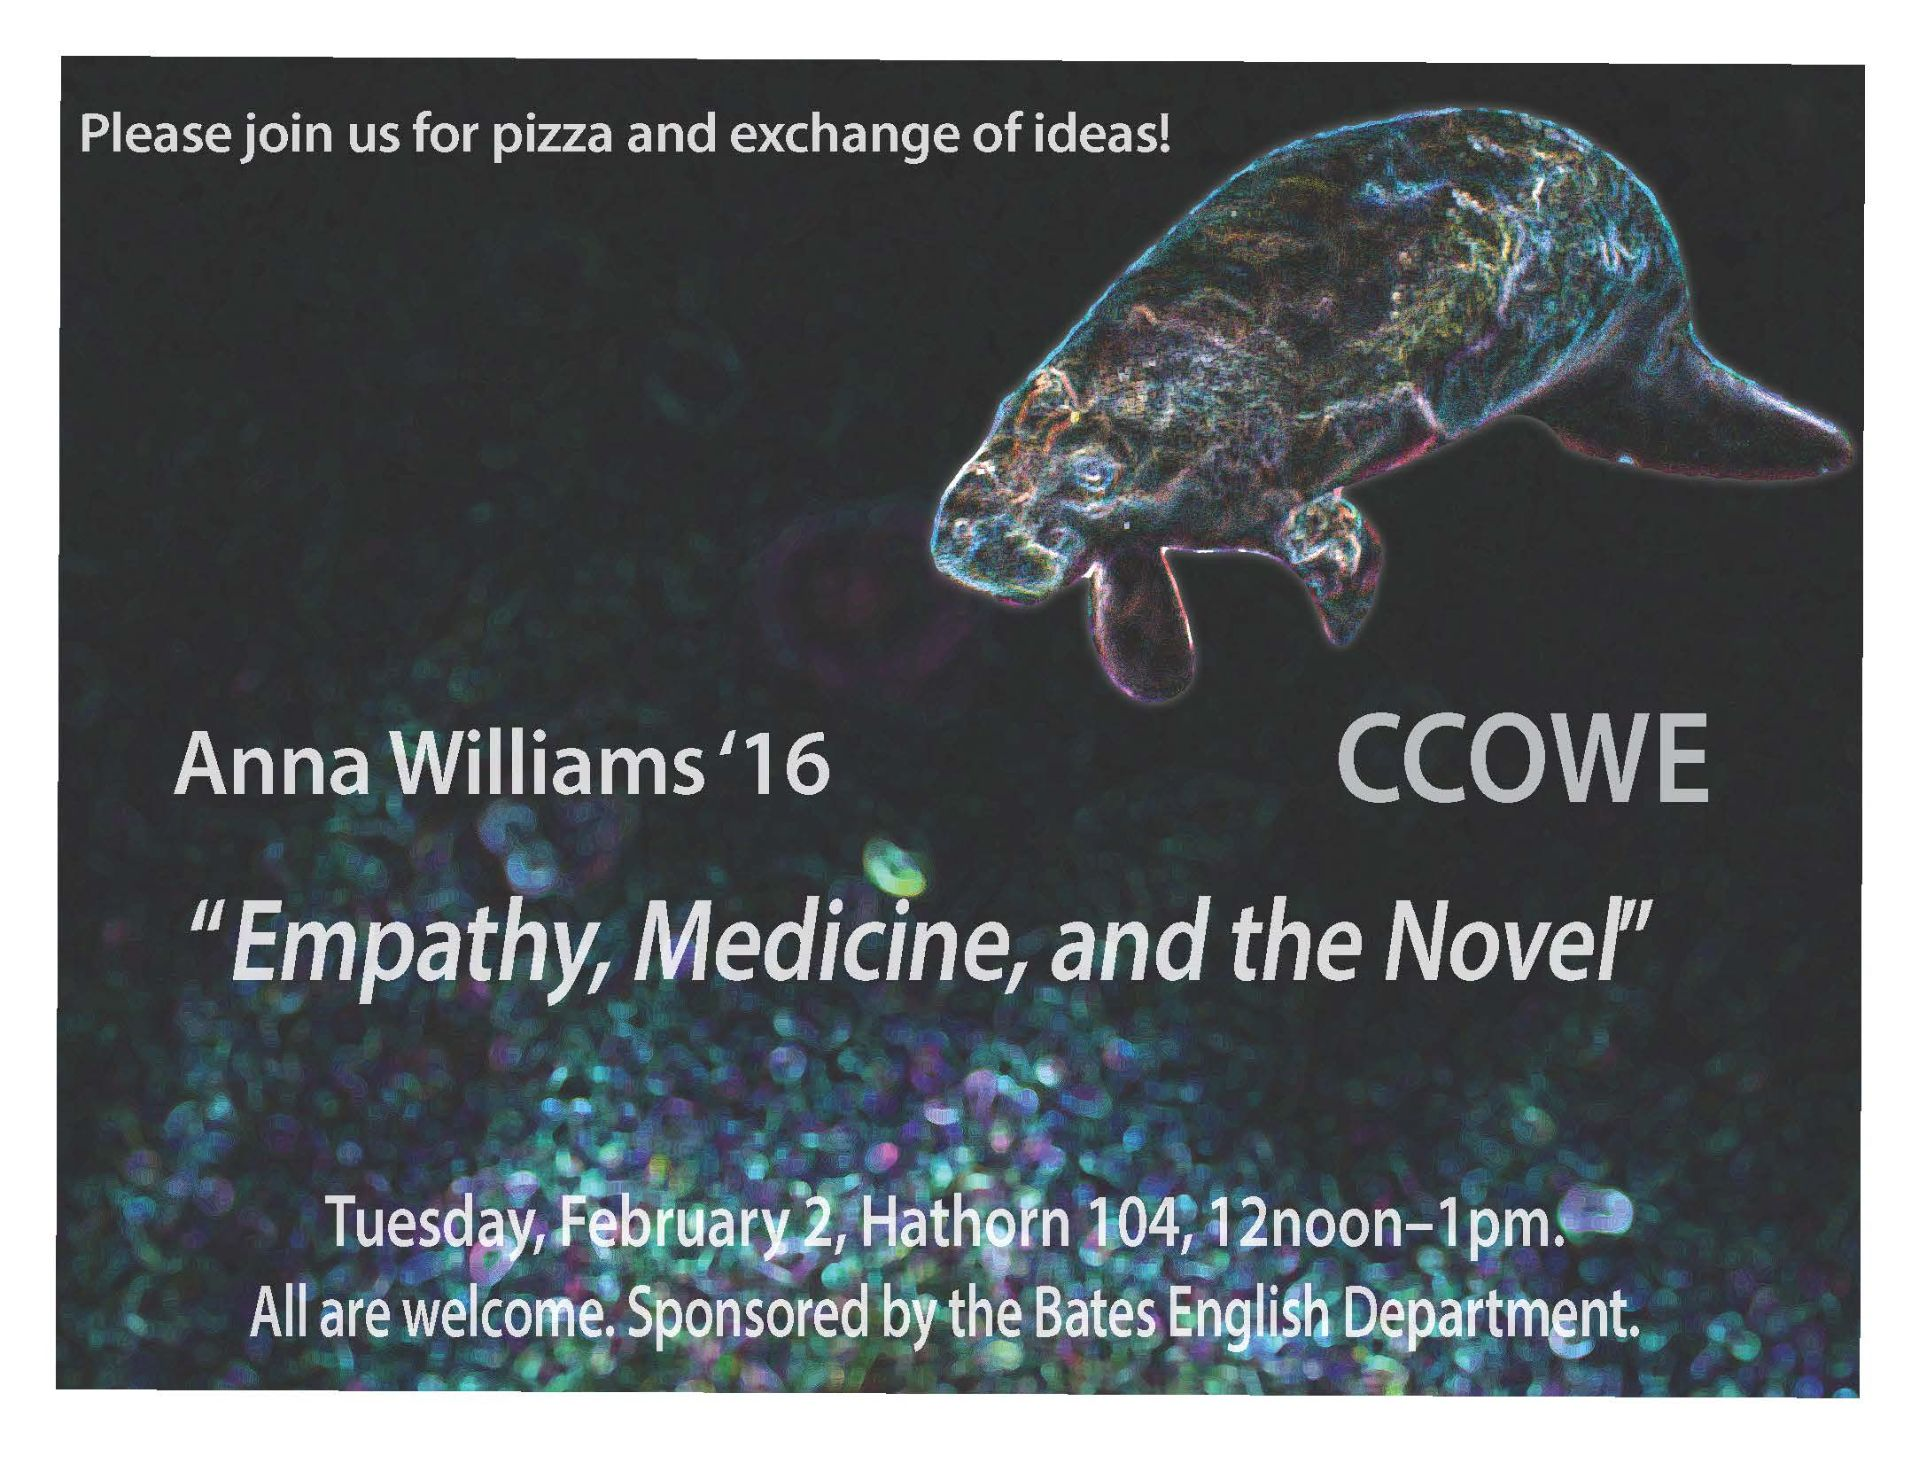 ccowe - williams 2-2-16 email